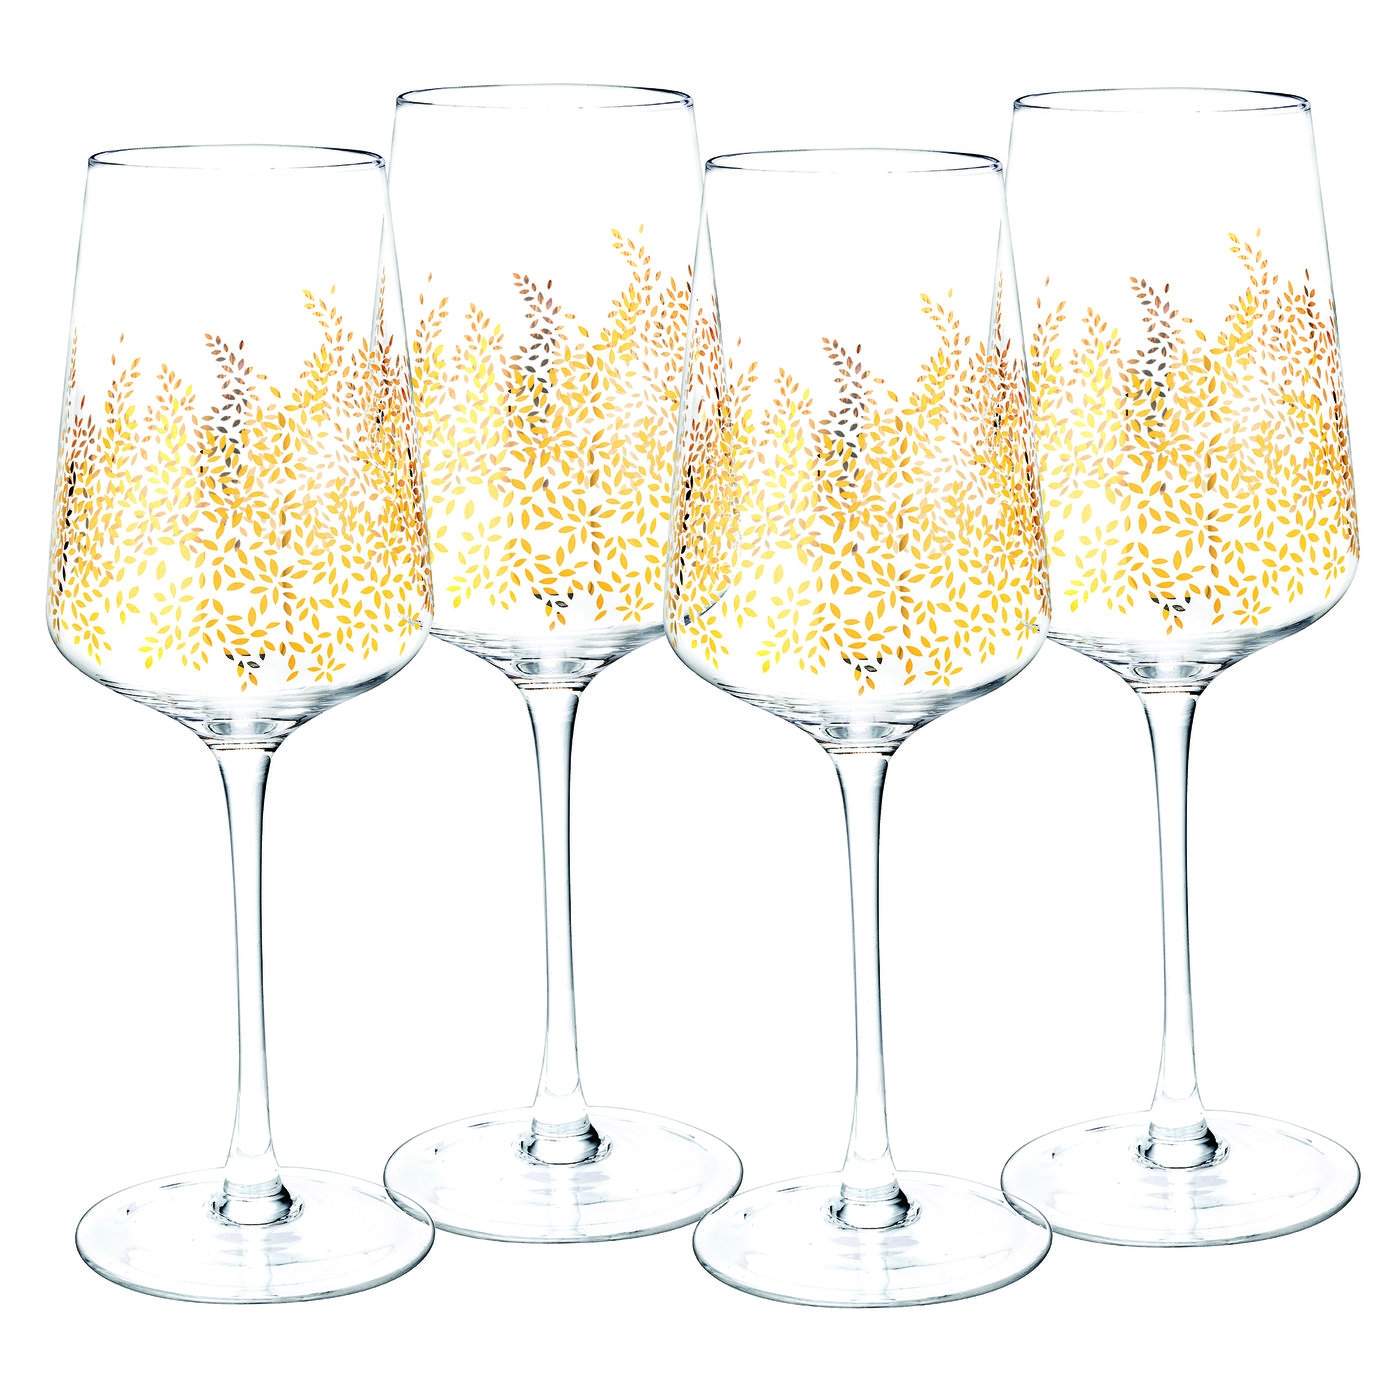 Sara Miller London for Portmeirion Large Wine Glass Set of 4 image number 0